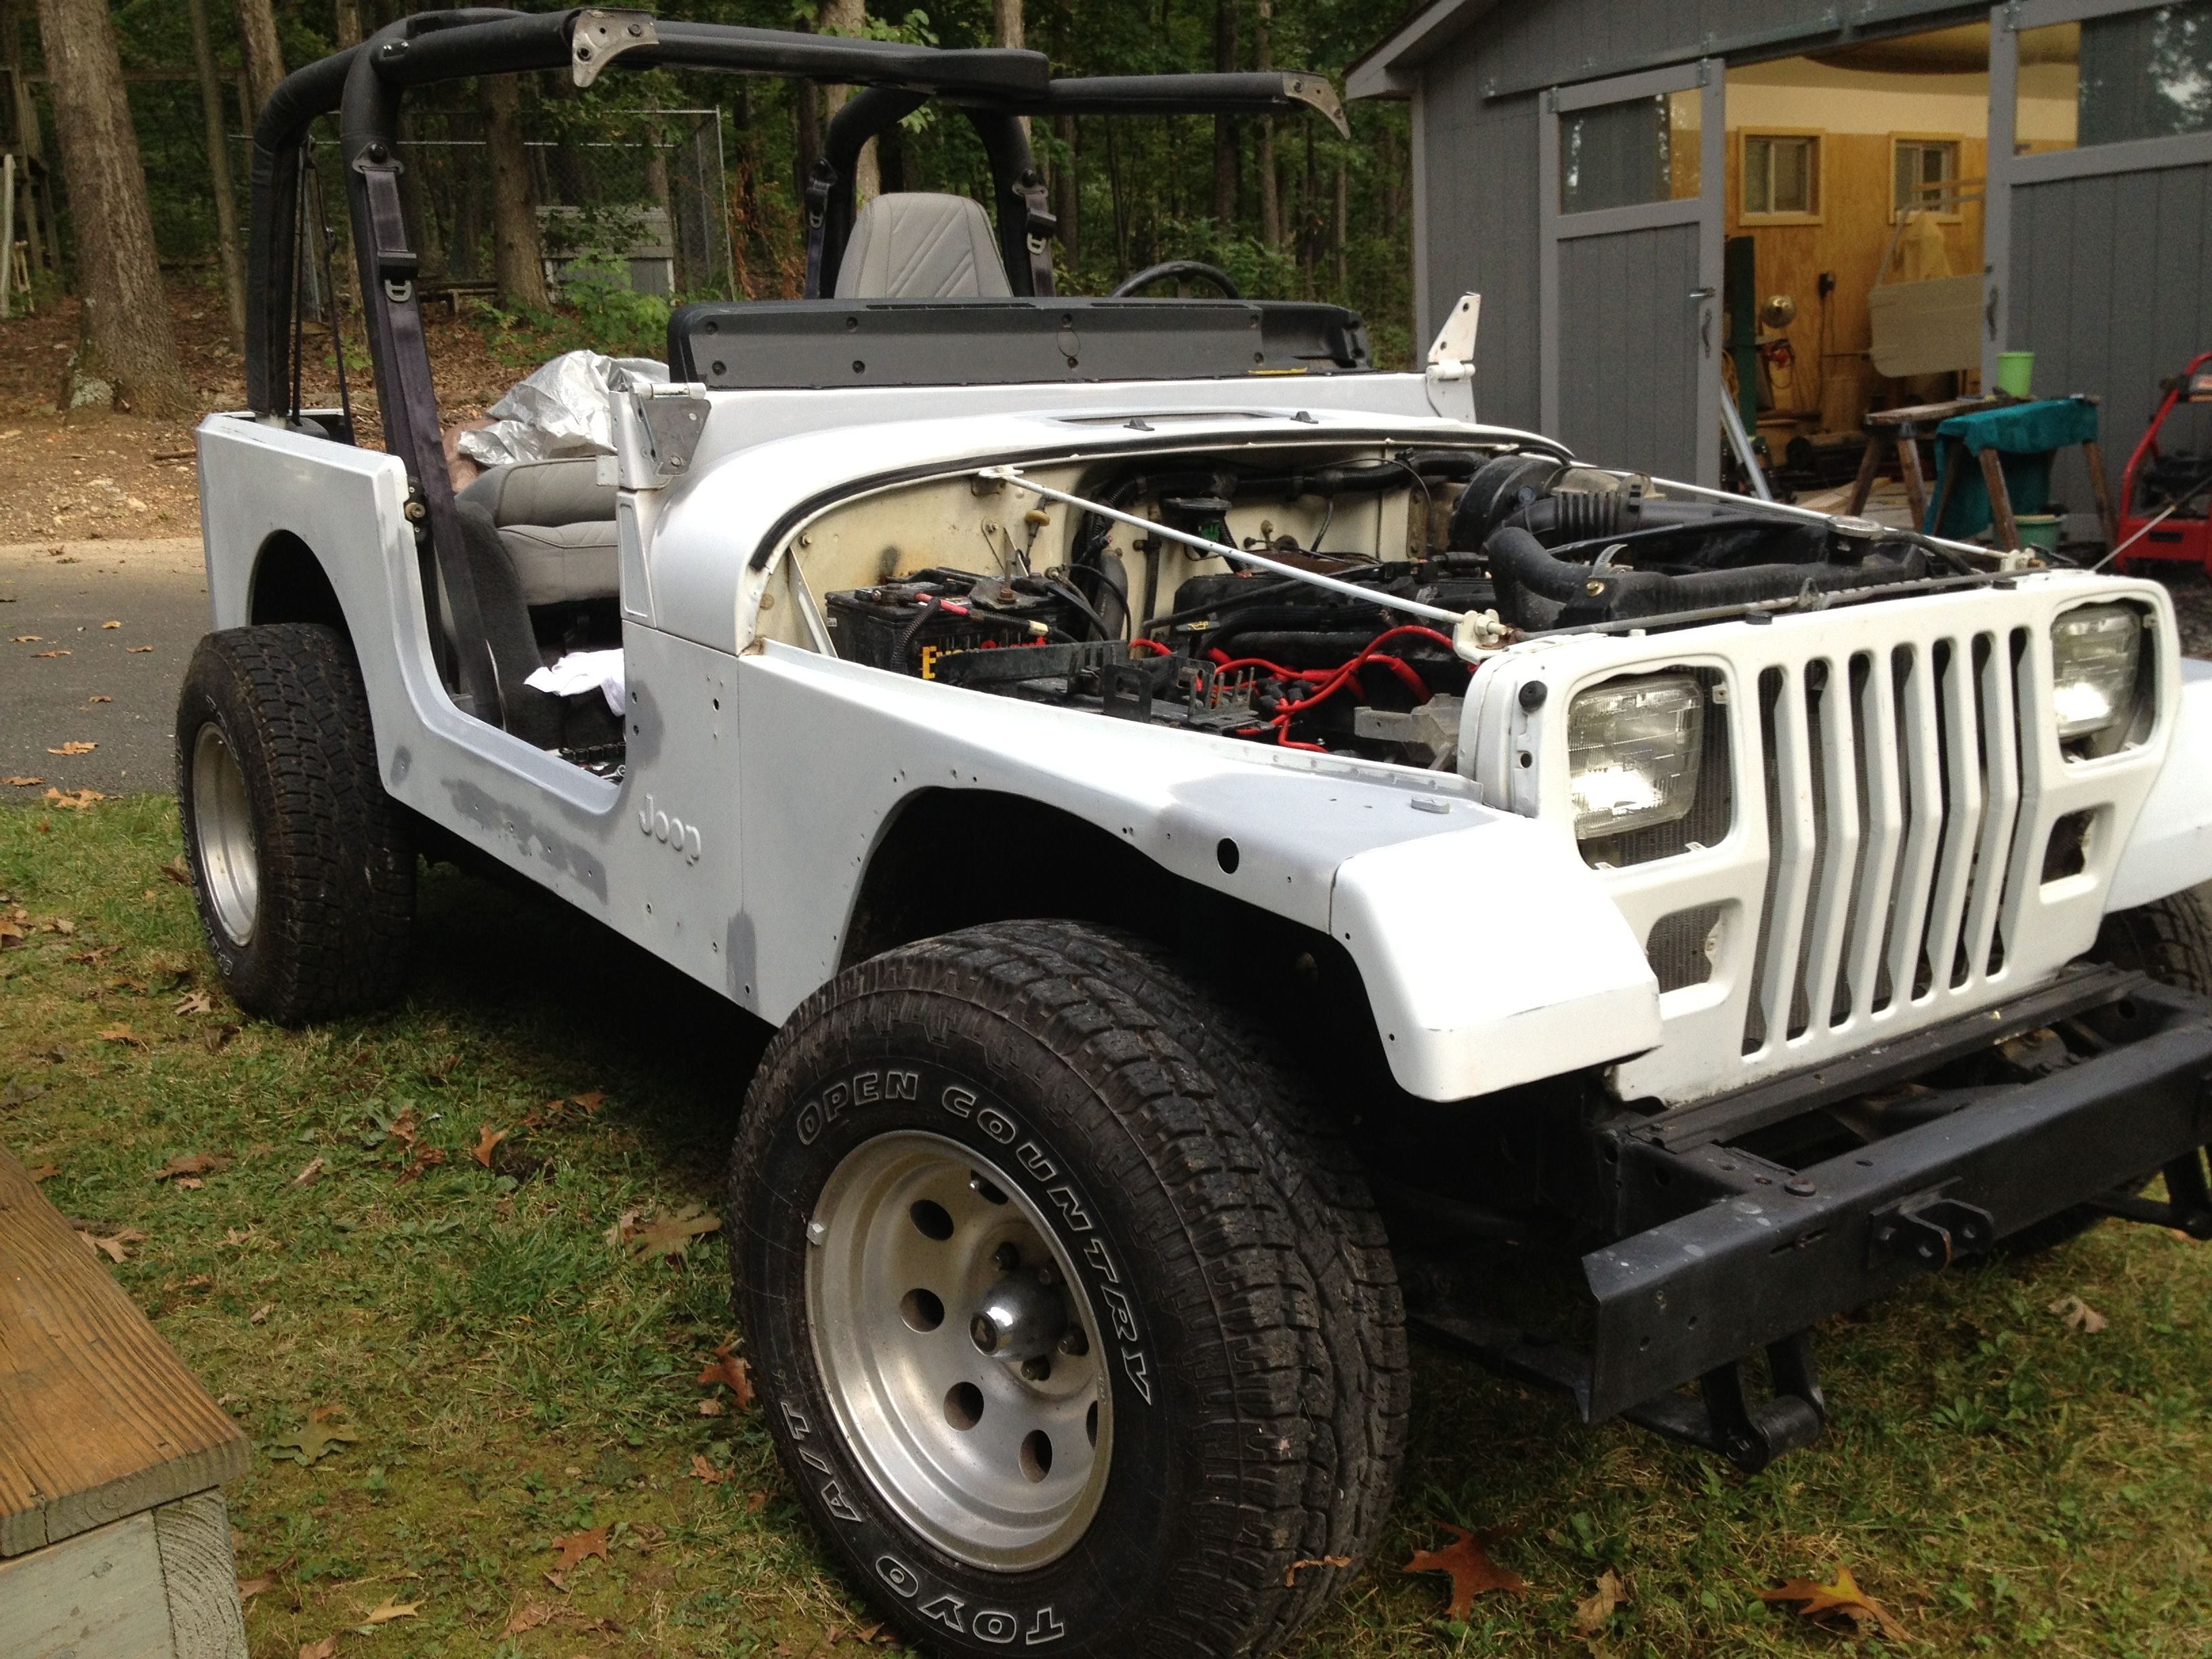 92 Yj In Progress Hood Fender Flares And The Old Islander Steps